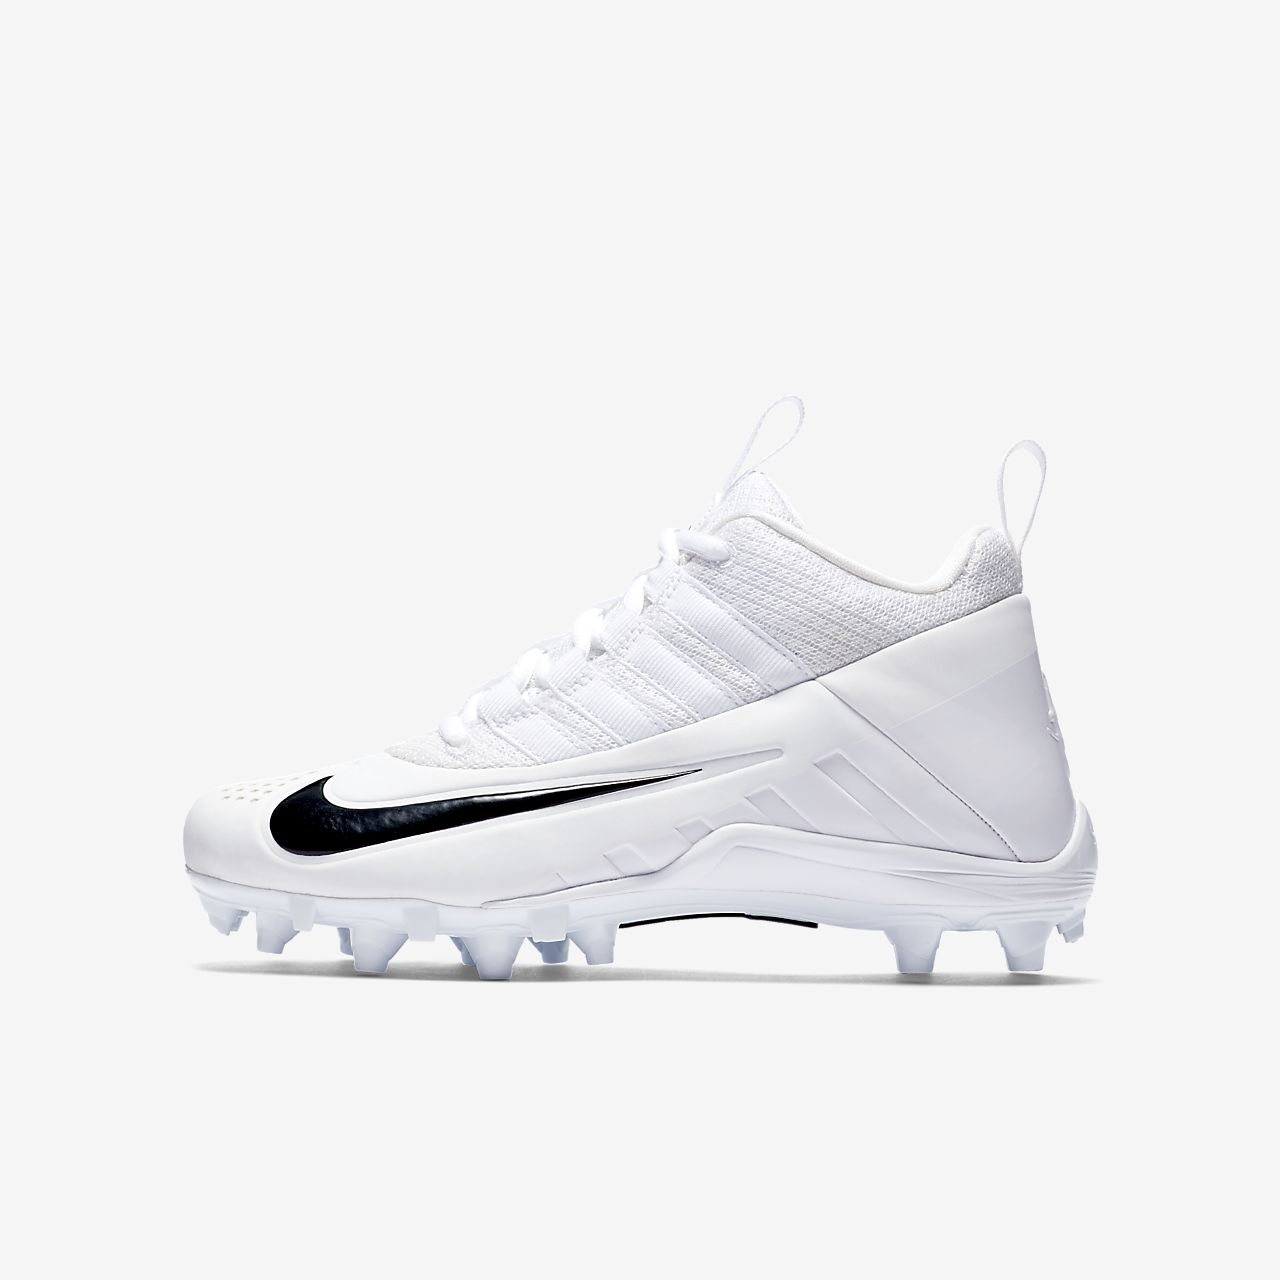 nike huarache 6 cleat